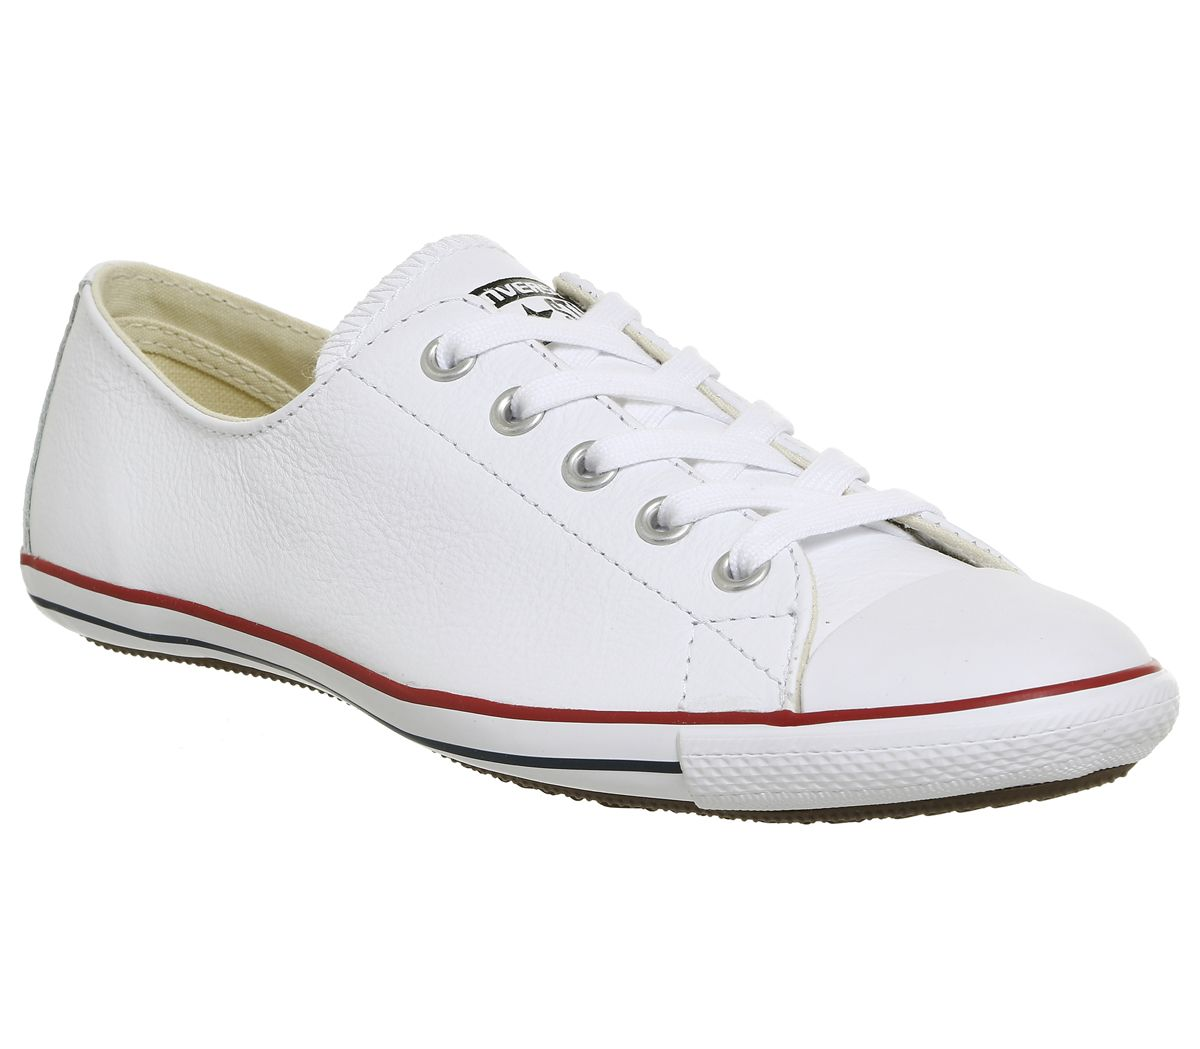 a2d0e06488ffb9 Converse Ct Lite 2 White Garnet Leather Exclusive - Hers trainers